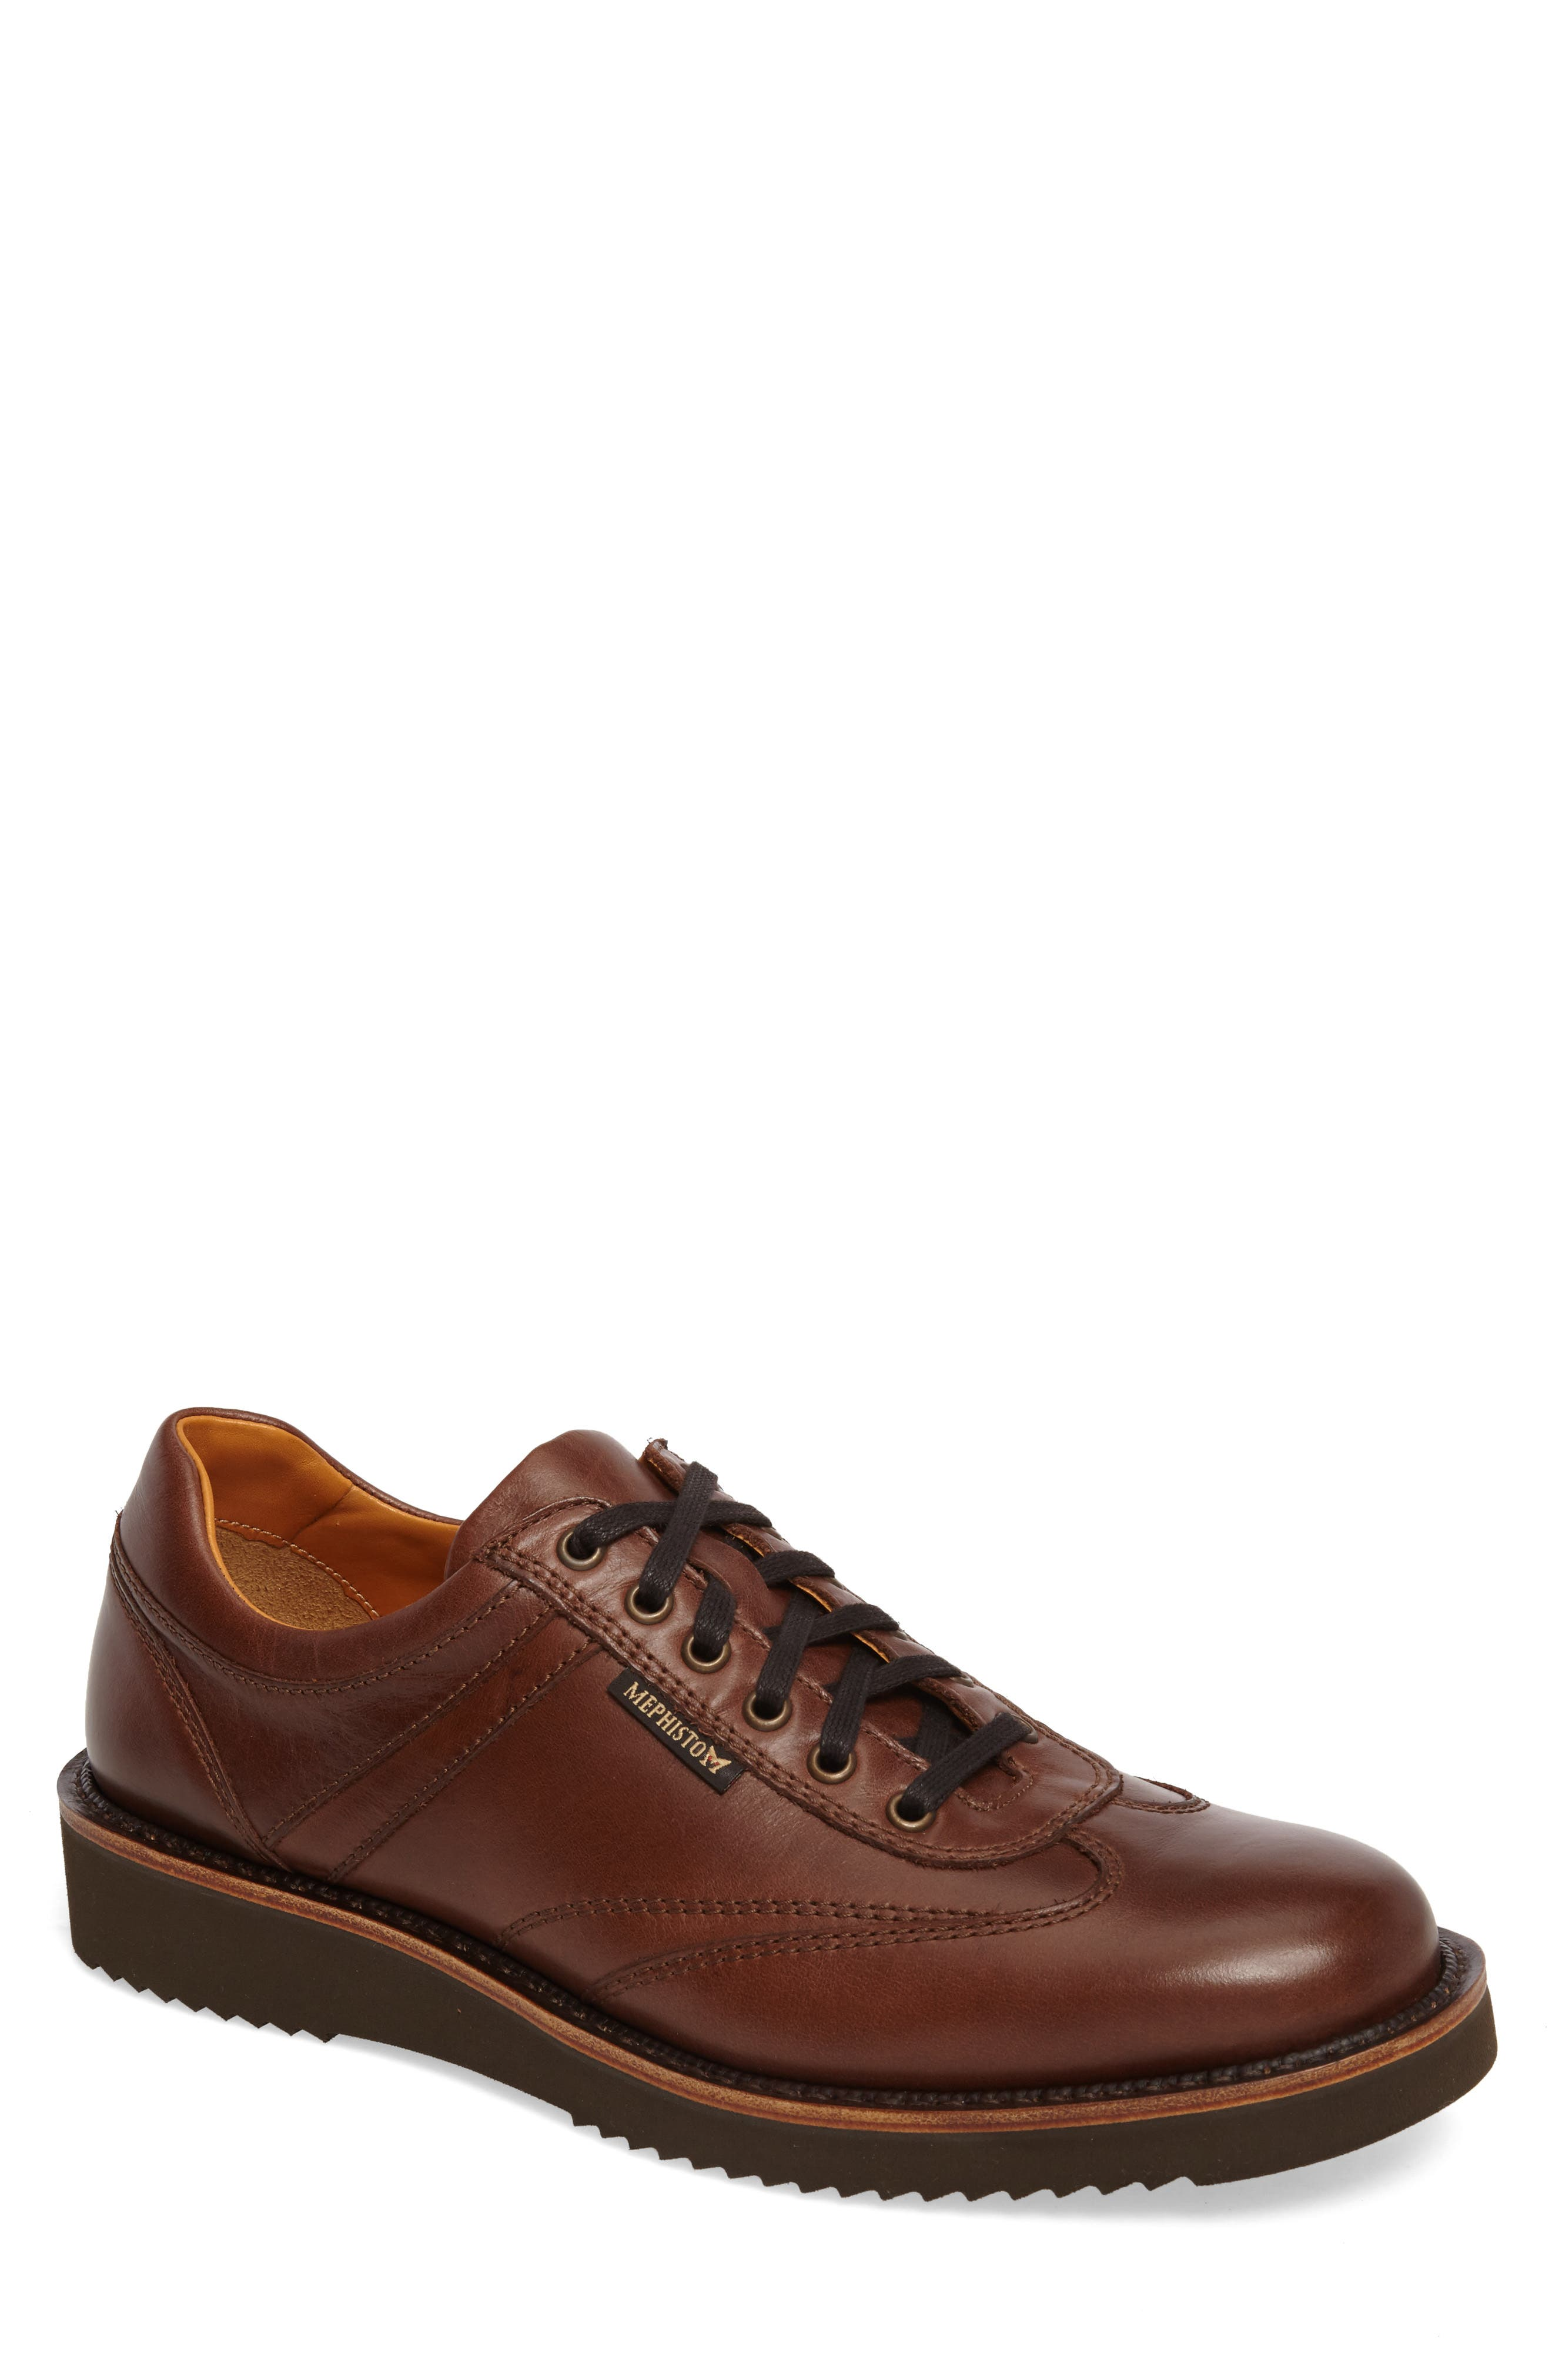 MEPHISTO, Adriano Sneaker, Main thumbnail 1, color, CHESTNUT LEATHER